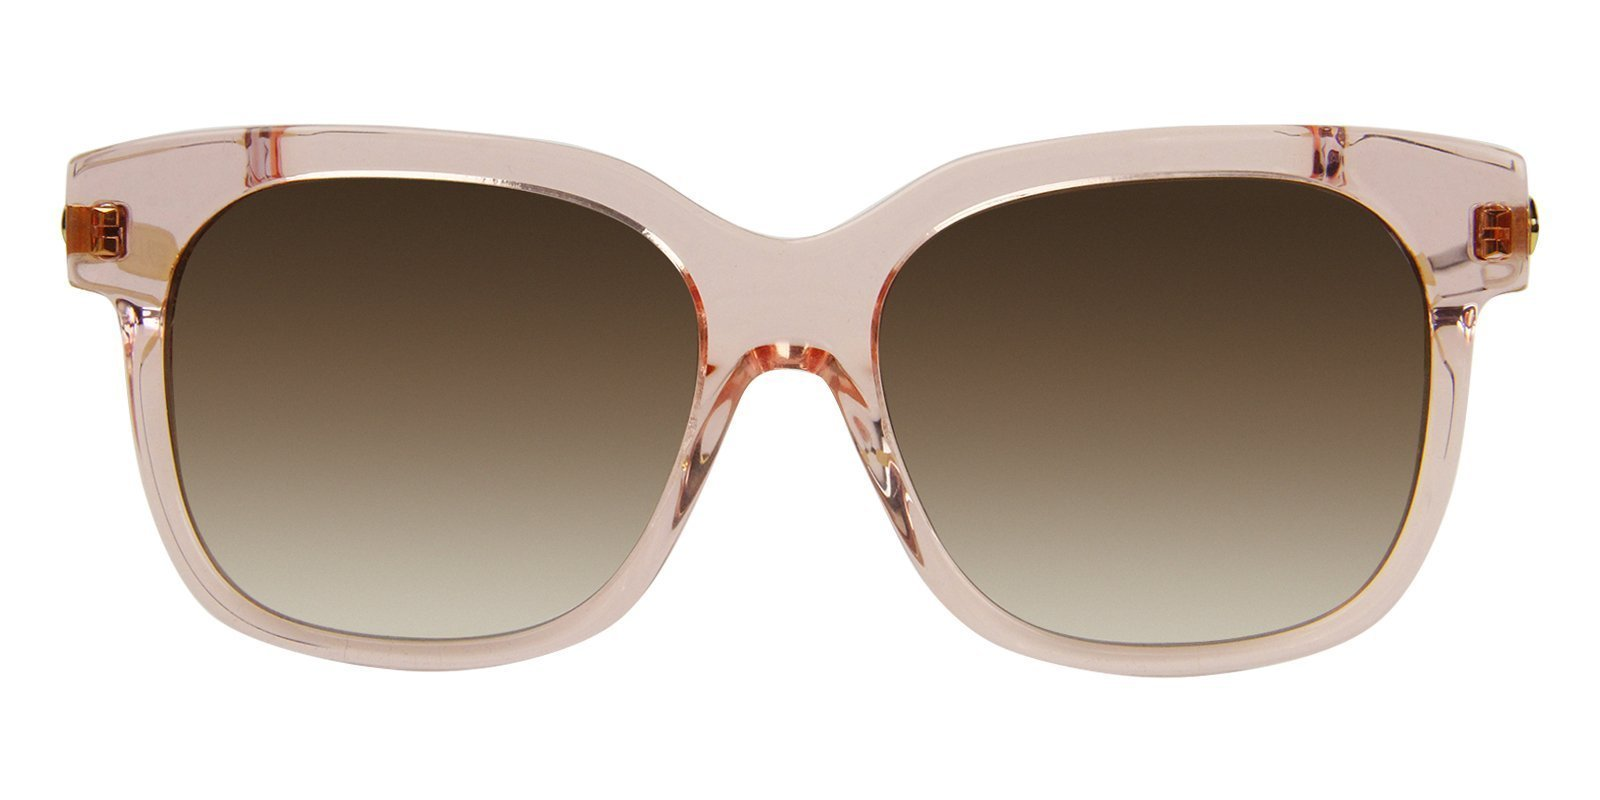 Thierry Lasry - Rapsody Pink Rectangular Women Sunglasses - 57mm-Sunglasses-Designer Eyes